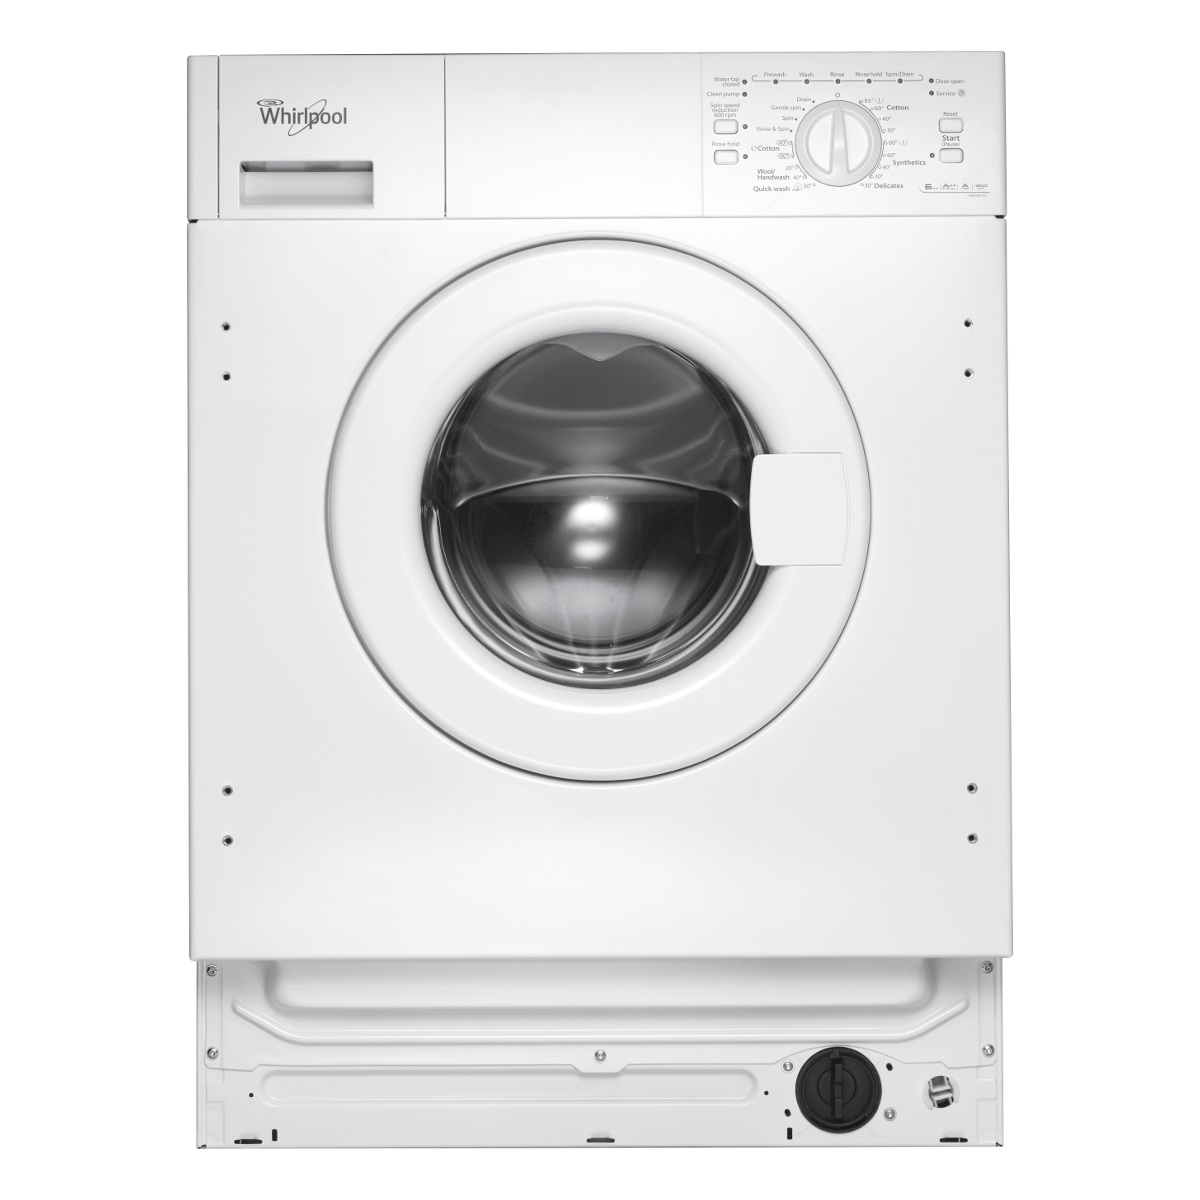 Whirlpool Awoa 6122 Built In Washing Machine 6kg Load